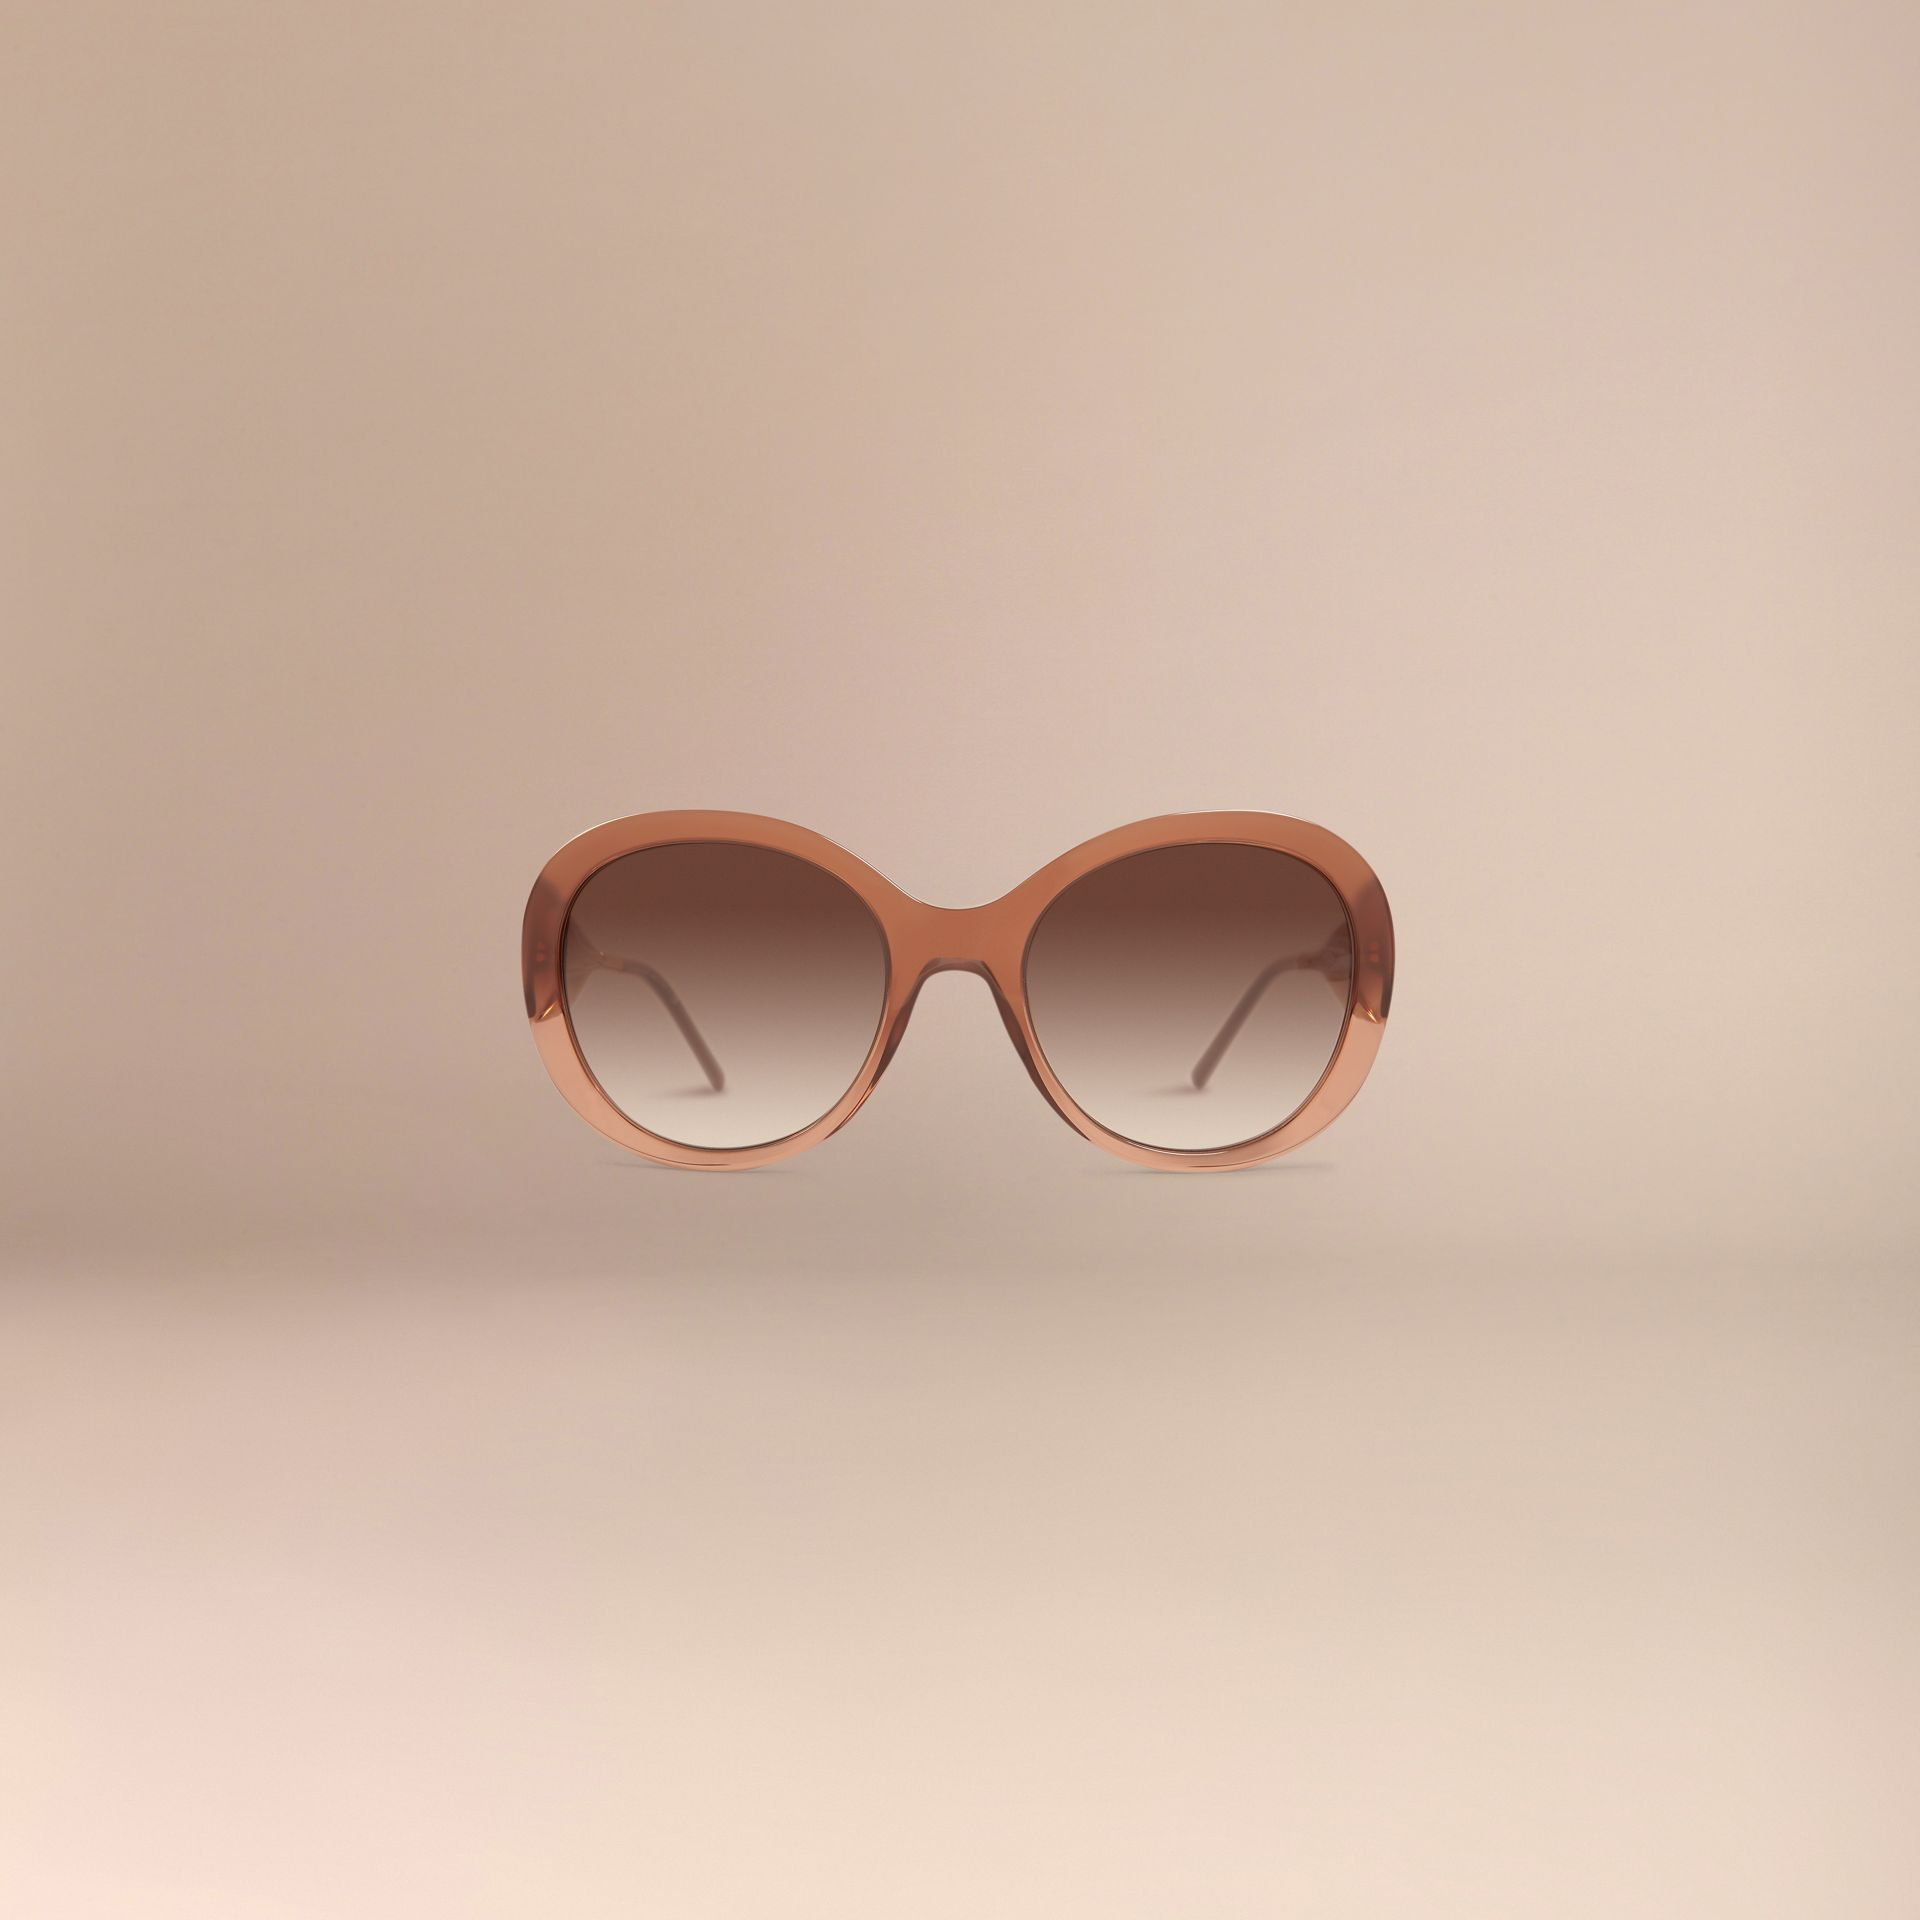 Oversize Round Frame Sunglasses in Fawn Pink - Women | Burberry - gallery image 3